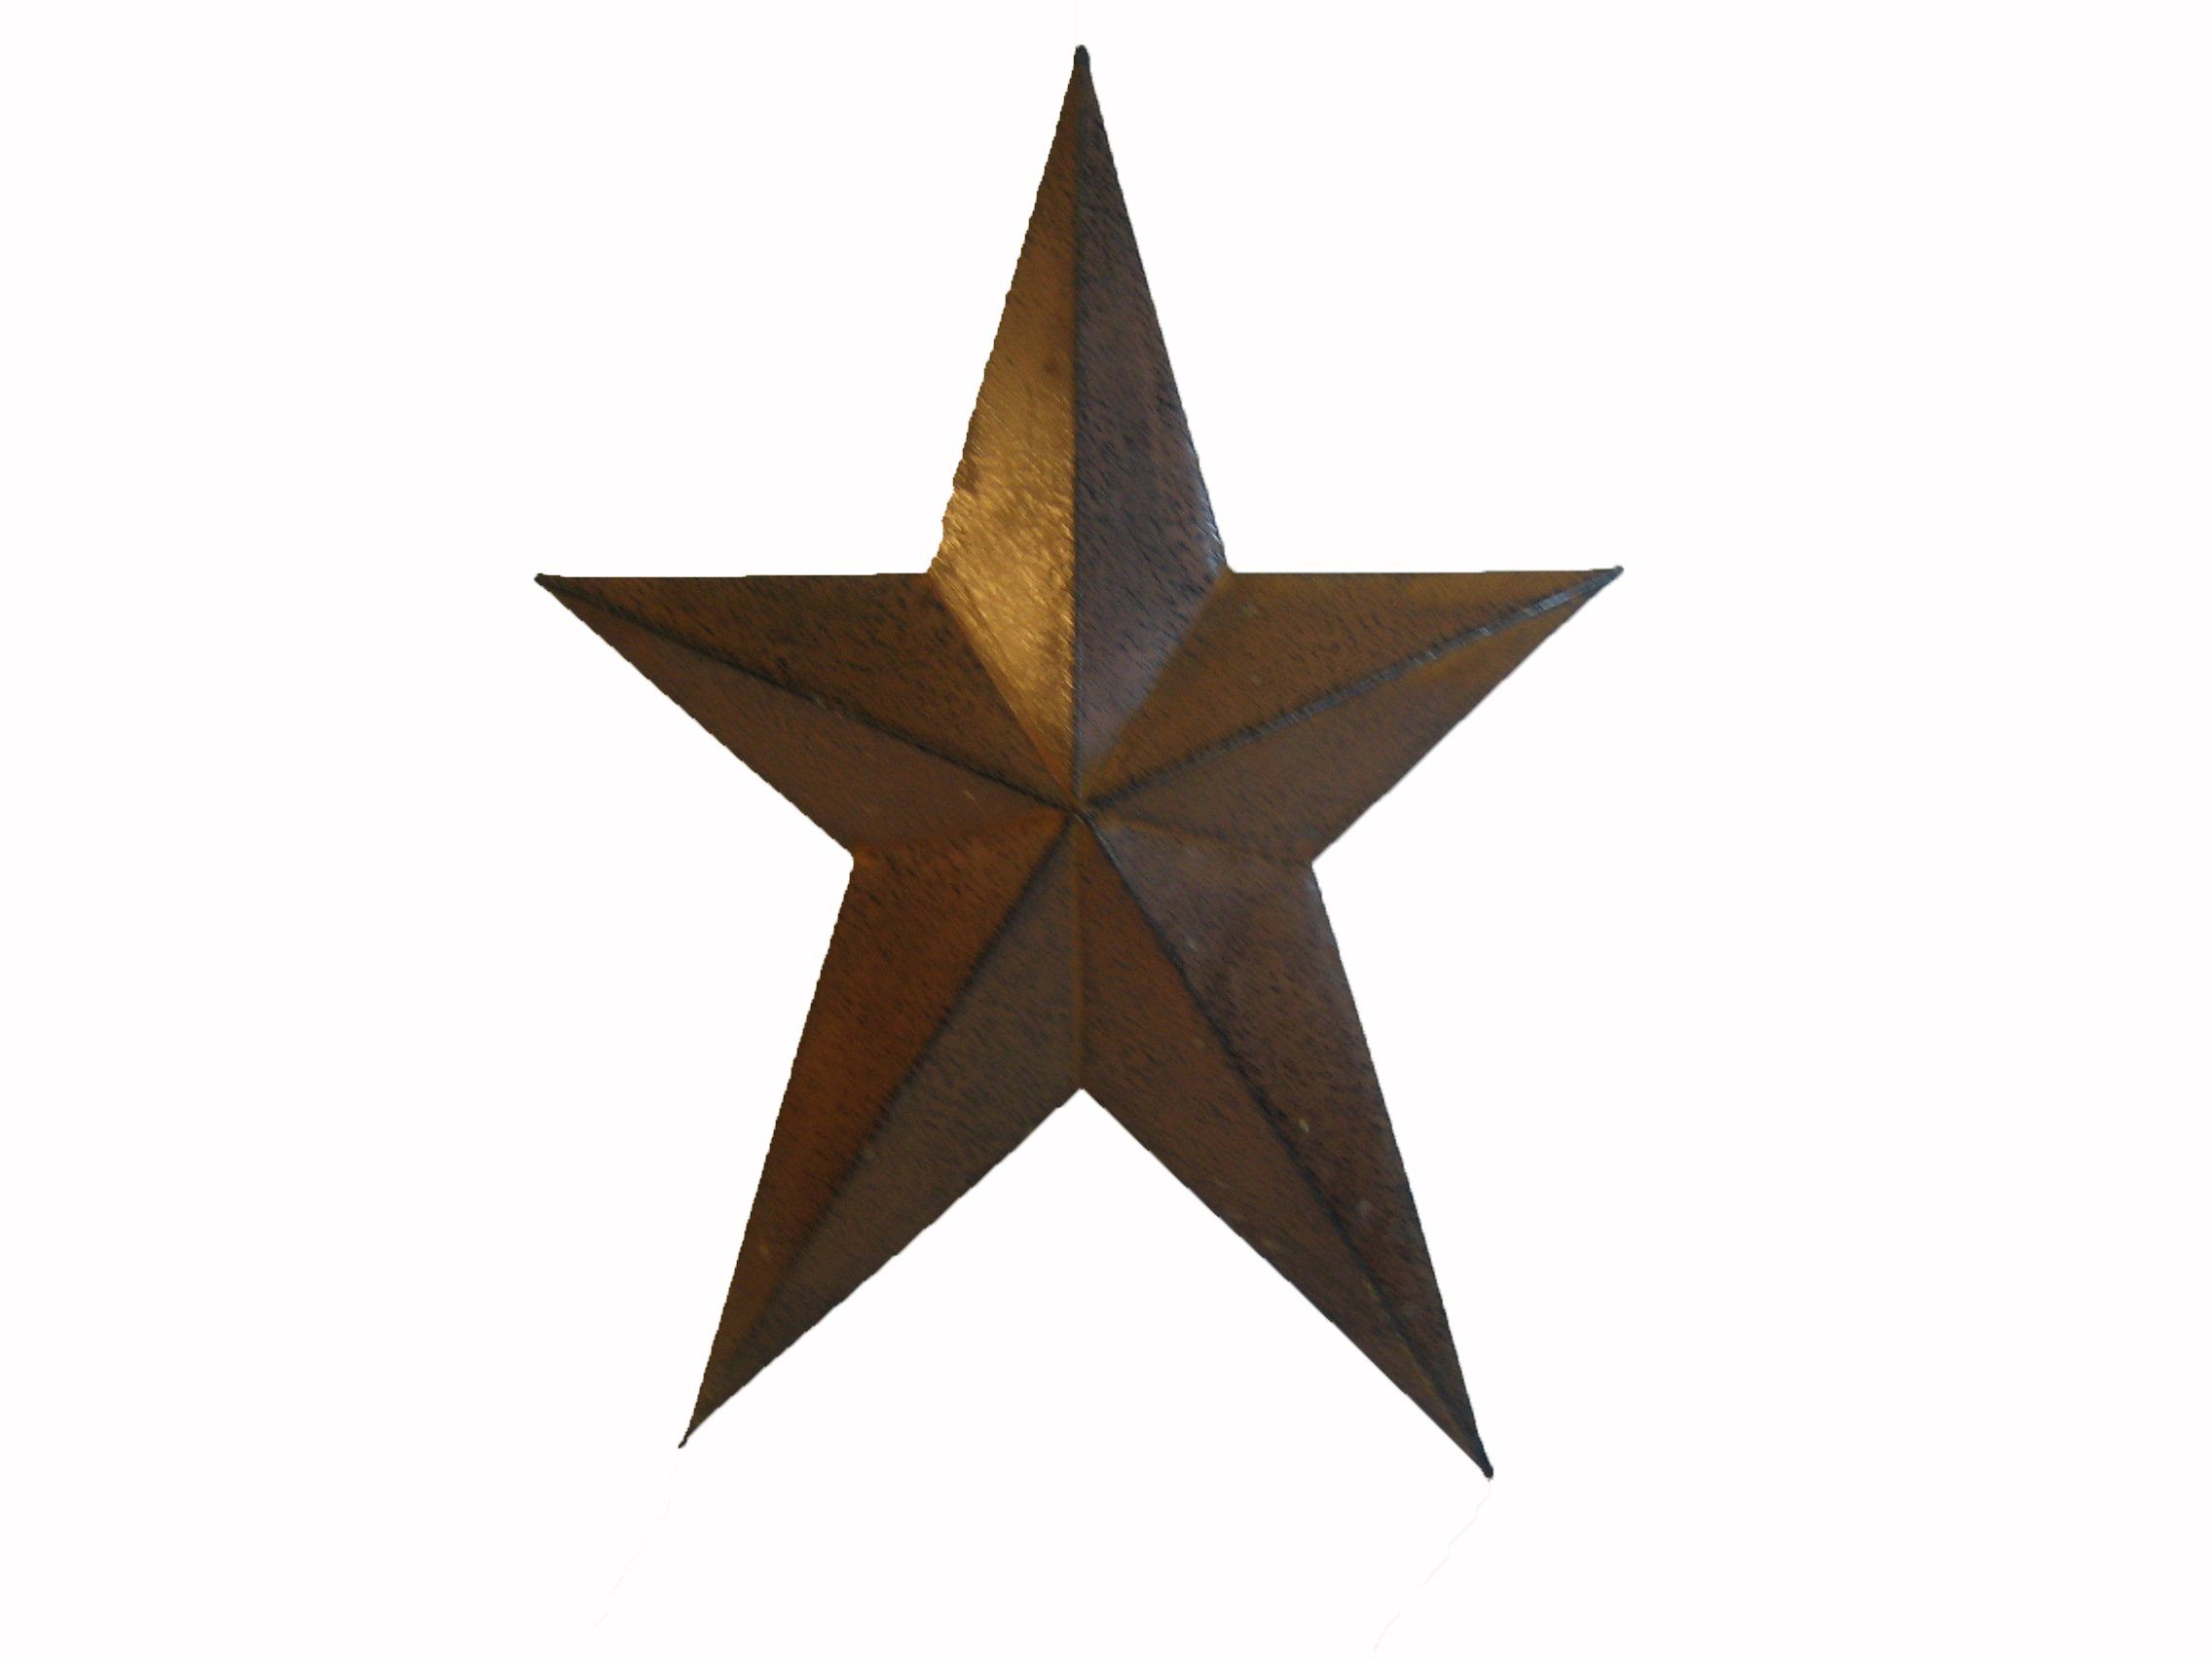 Craft Outlet Primitive Star Wall Decor, 12-Inch, Rust, Set of 4